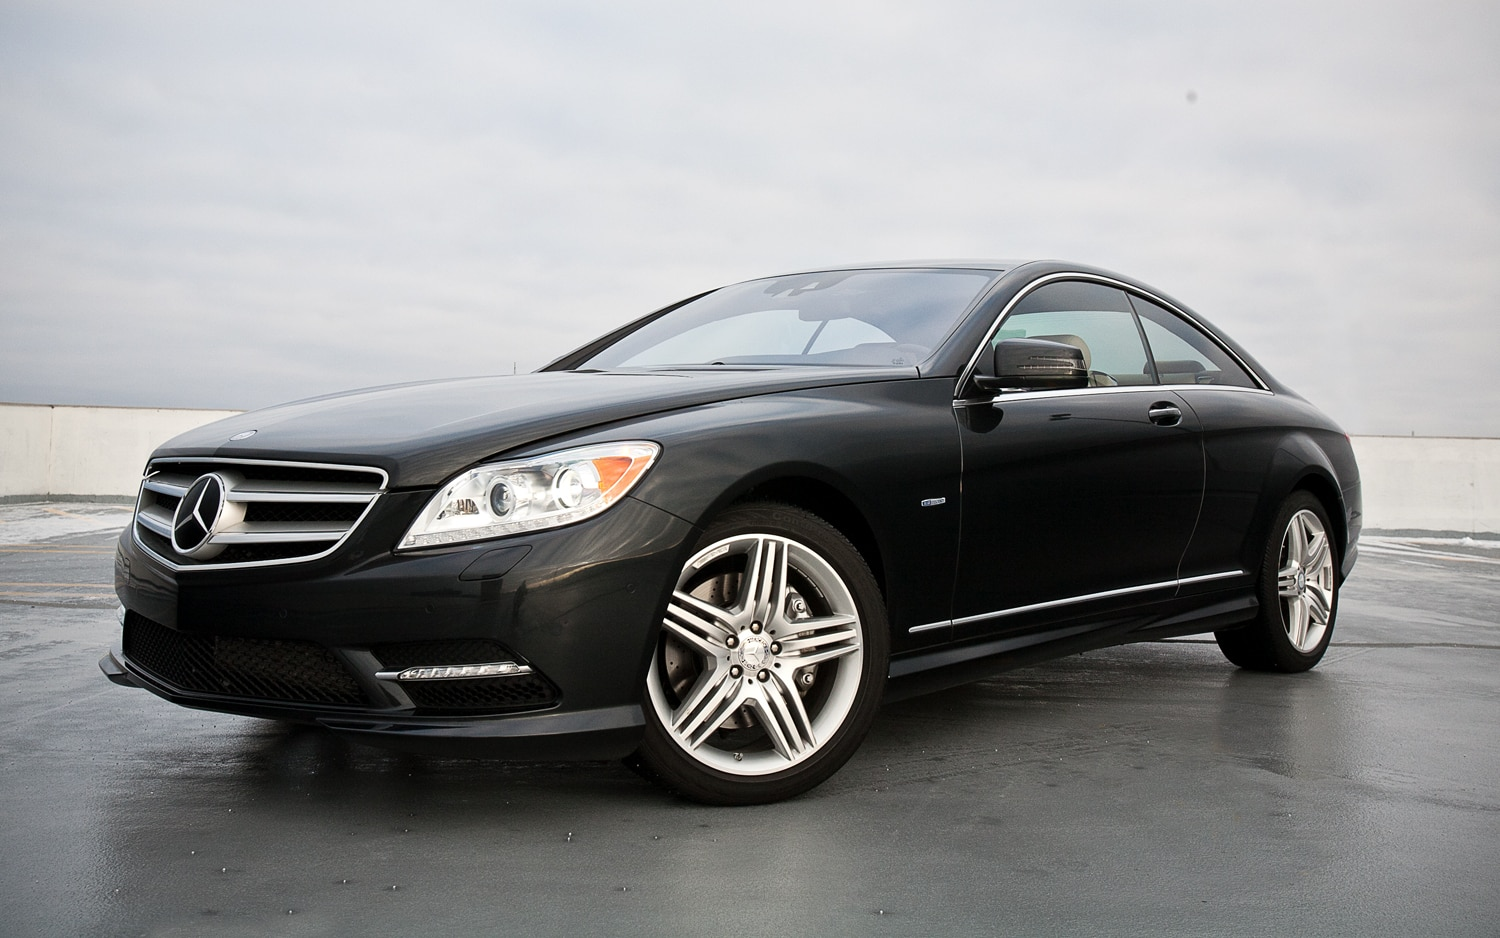 2012 Mercedes Benz CL550 4Matic Front Left Side View2